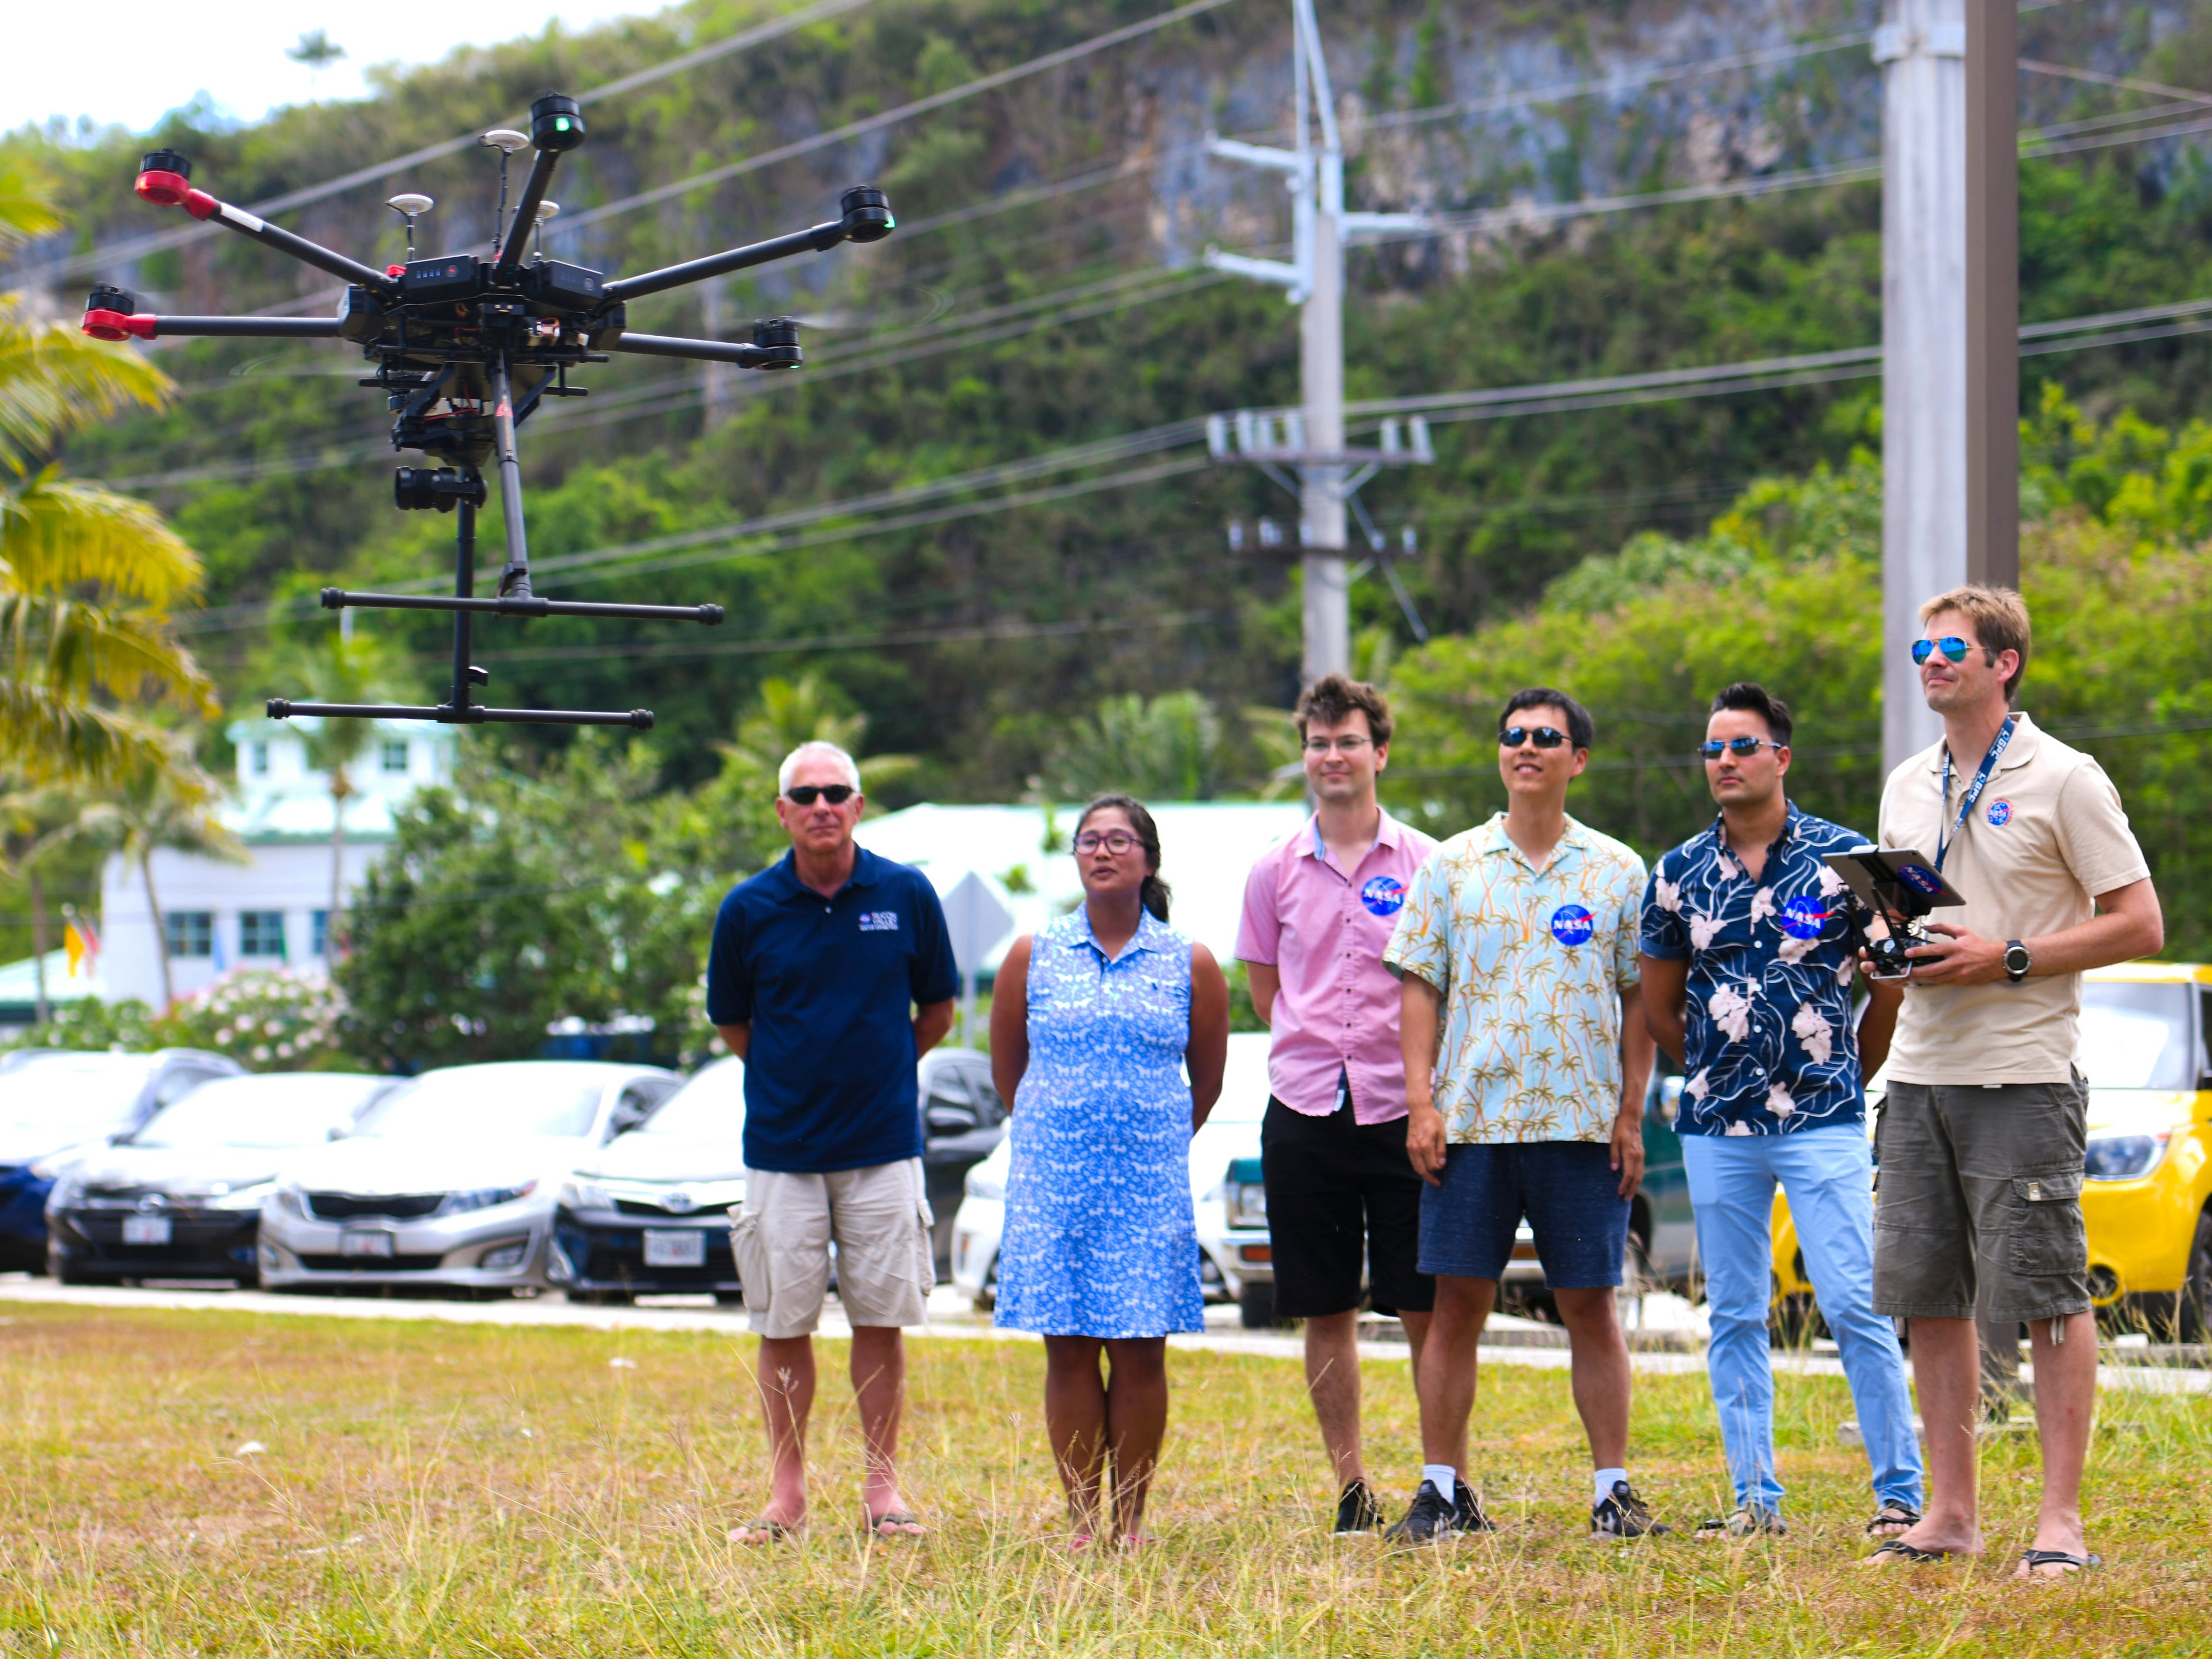 Romina King, second from left, University of Guam's Pacific Islands Climate Adaptation Science Center program director, stands with a research team from NASA, including Ved Chirayath, second from right, as NASA research engineer Jonas Jonsson launches an unmanned aerial vehicle in to the air at Tepungan Beach Park, near Fisheye Marine Park in Piti, on Wednesday, May 15, 2019. The drone, using Fluid Lensing technology developed by Chirayath, has been able to map the underwater coral reef in the waters of Piti and Tumon from the air.